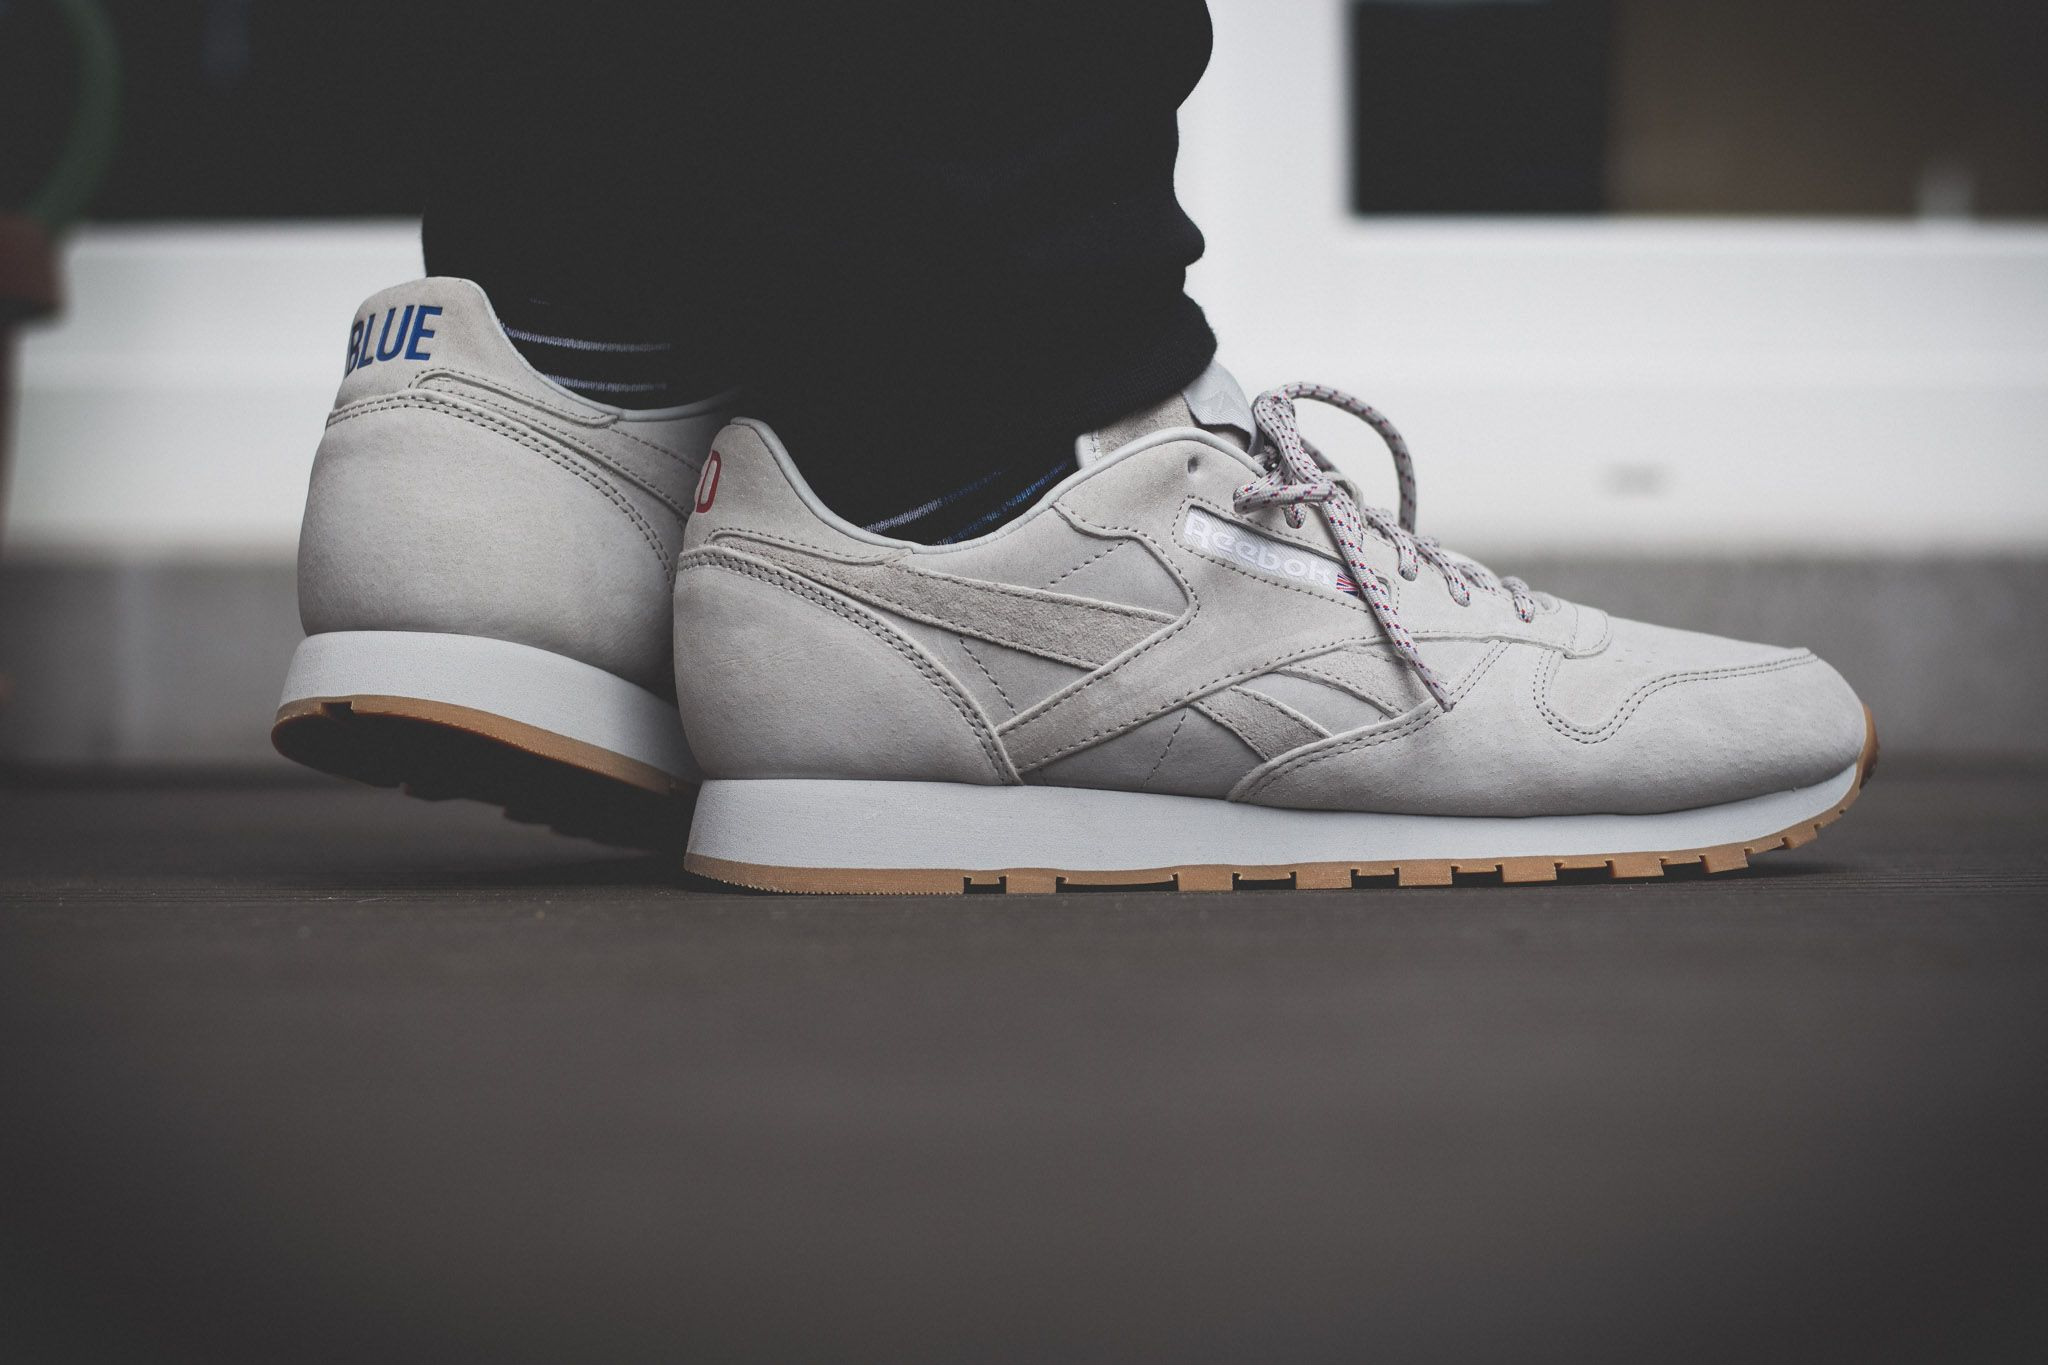 5fa00fbd650f Kendrick Lamar x Reebok Classic Leather Review